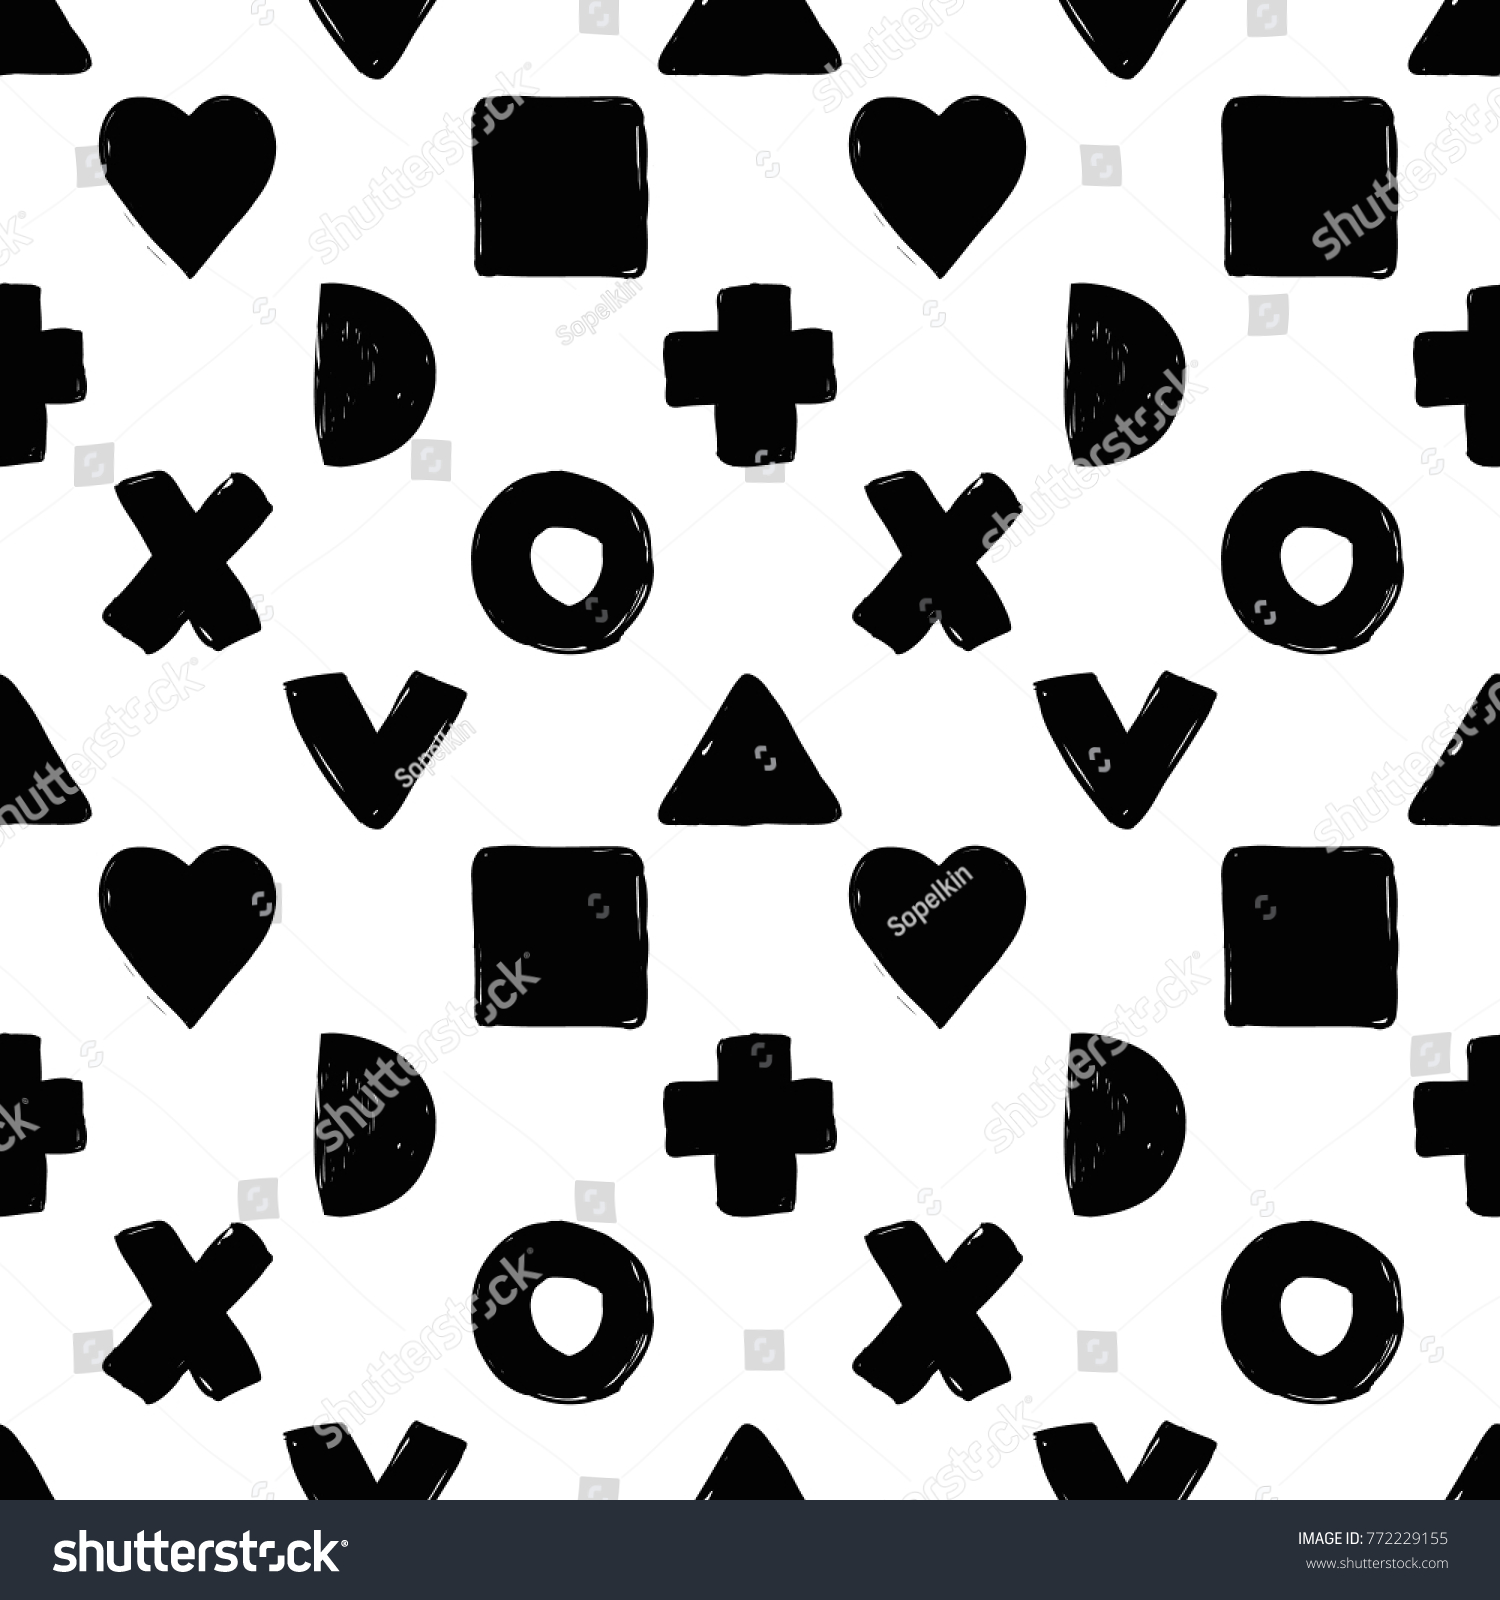 Modern kids bw seamless pattern square stock vector 772229155 modern kids bw seamless pattern with square x cross v half moon buycottarizona Image collections